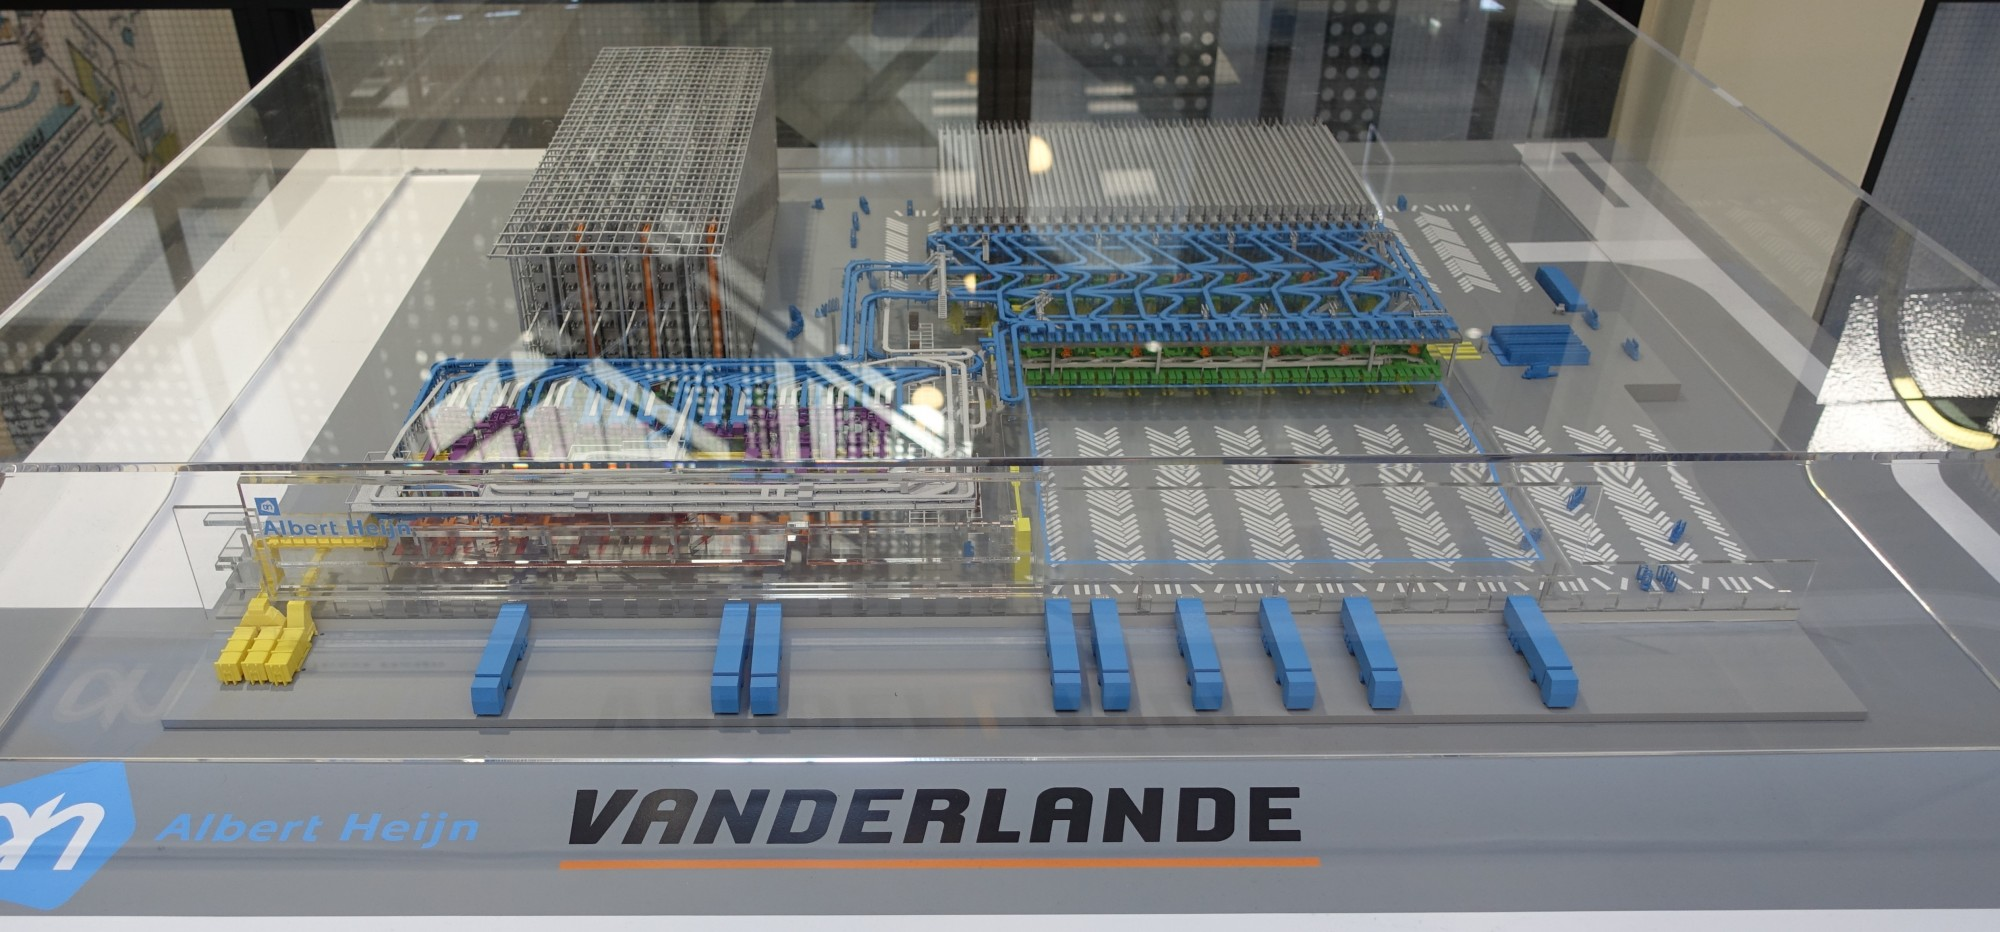 New Albert Heijn Distribution Center Represented by Giant 3D-Printed Scale Model